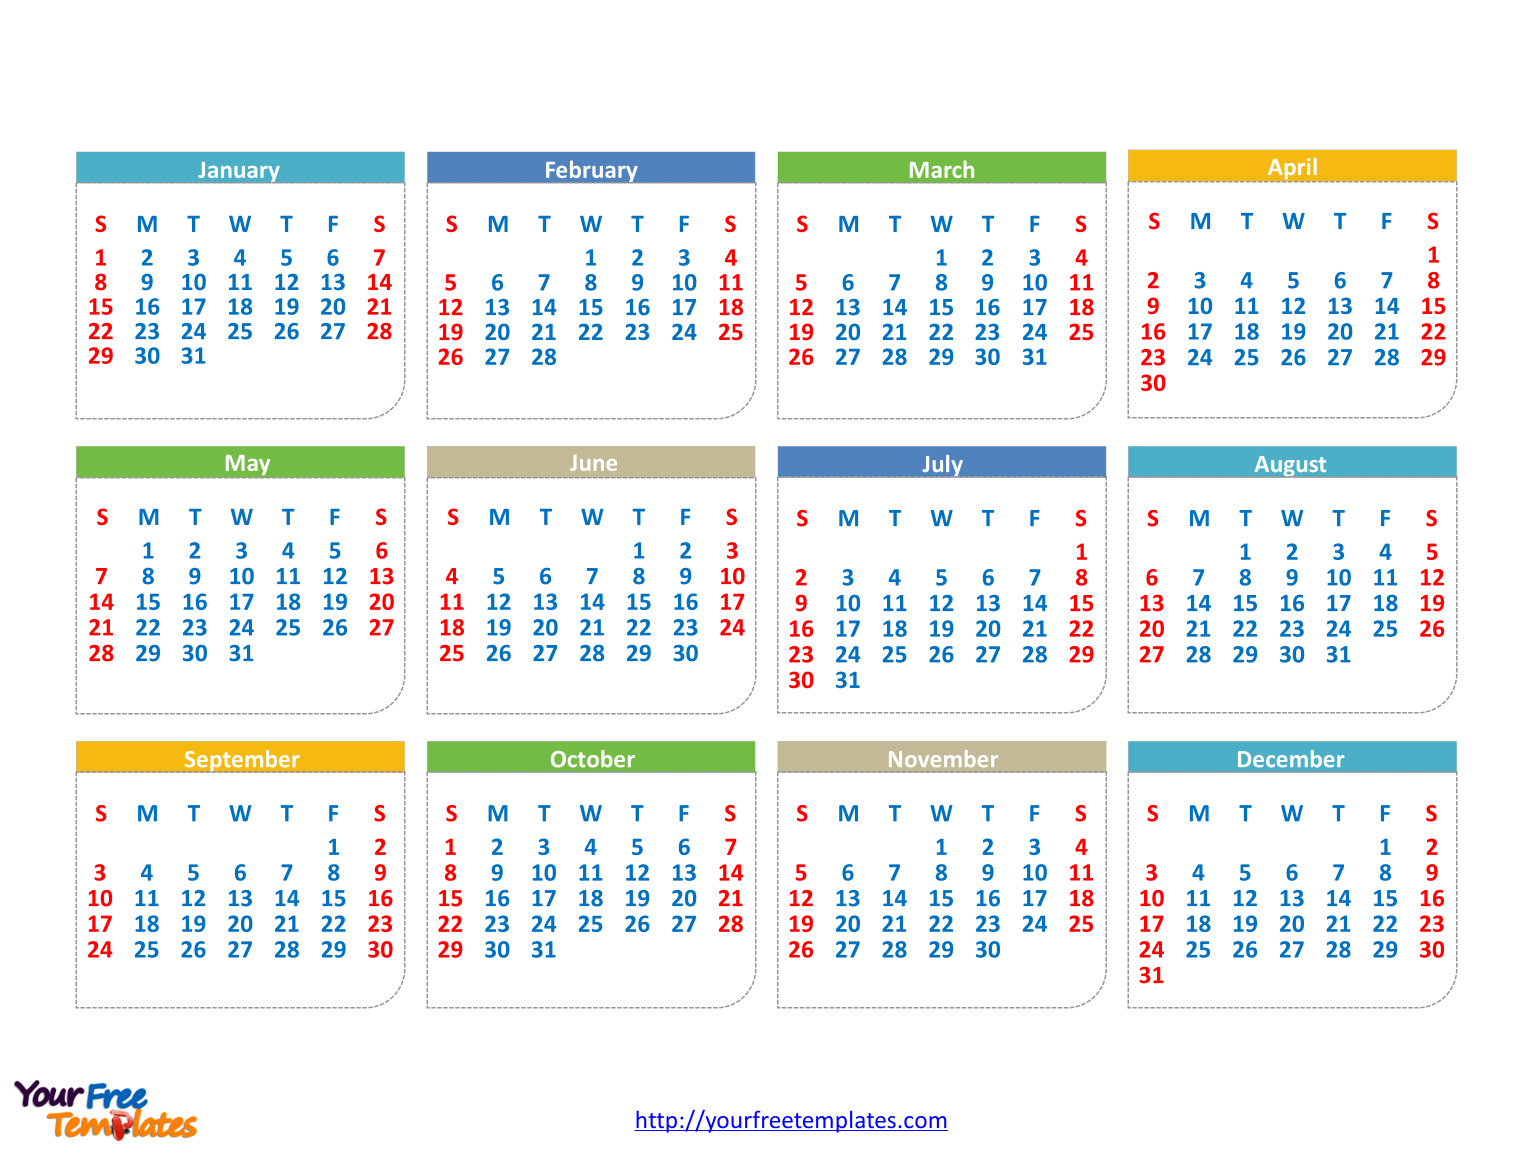 how to create calender 2017 grid 6 months